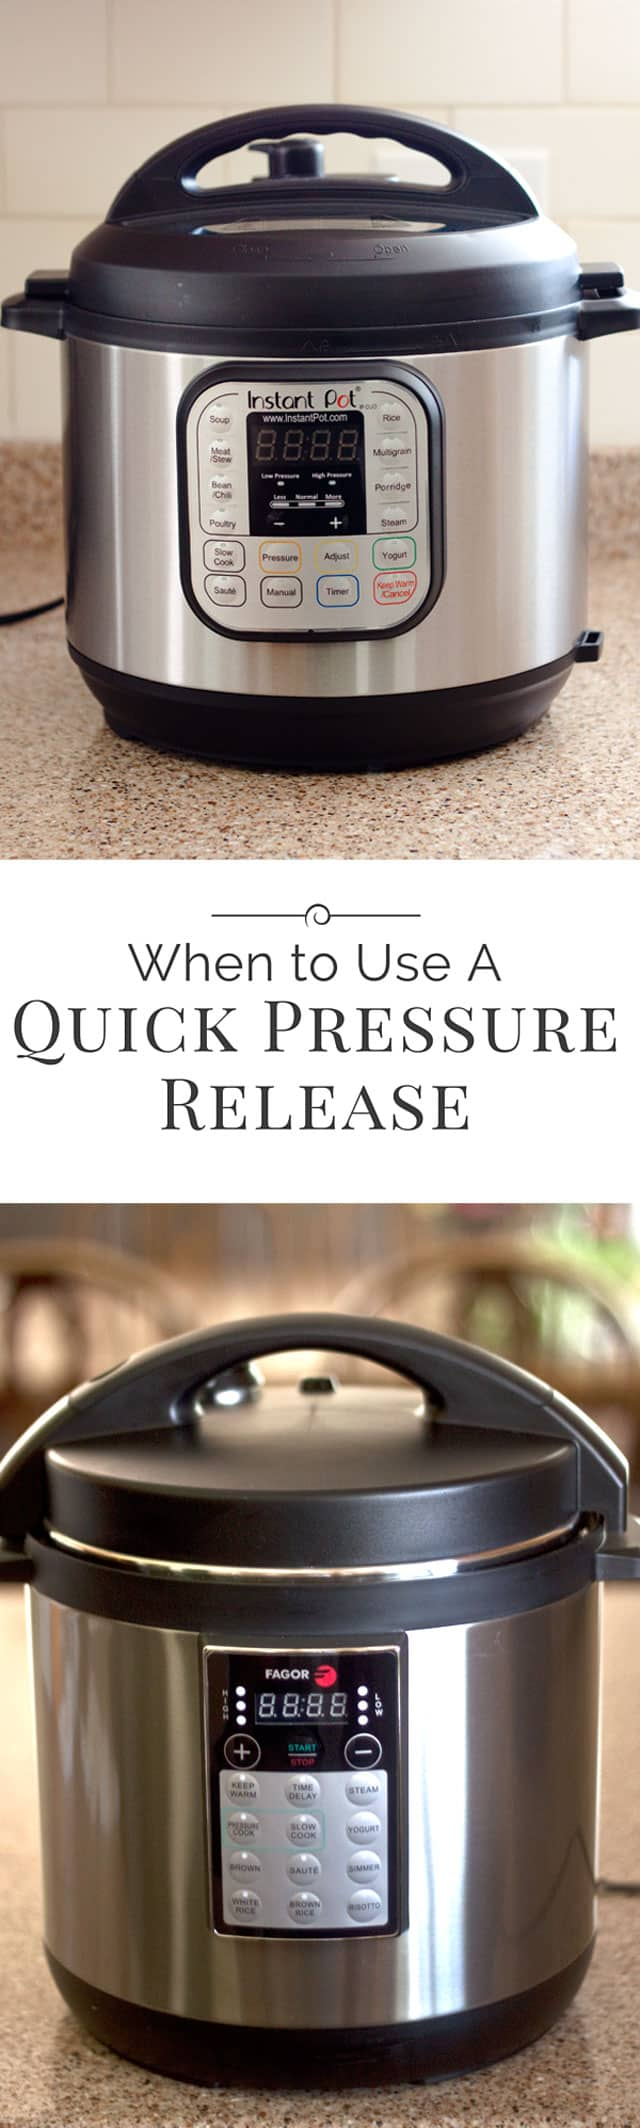 Quick pressure release or natural pressure release? Electric pressure cookers and multi-cookers like the Instant Pot have the ability to release pressure two ways. Here's the difference!